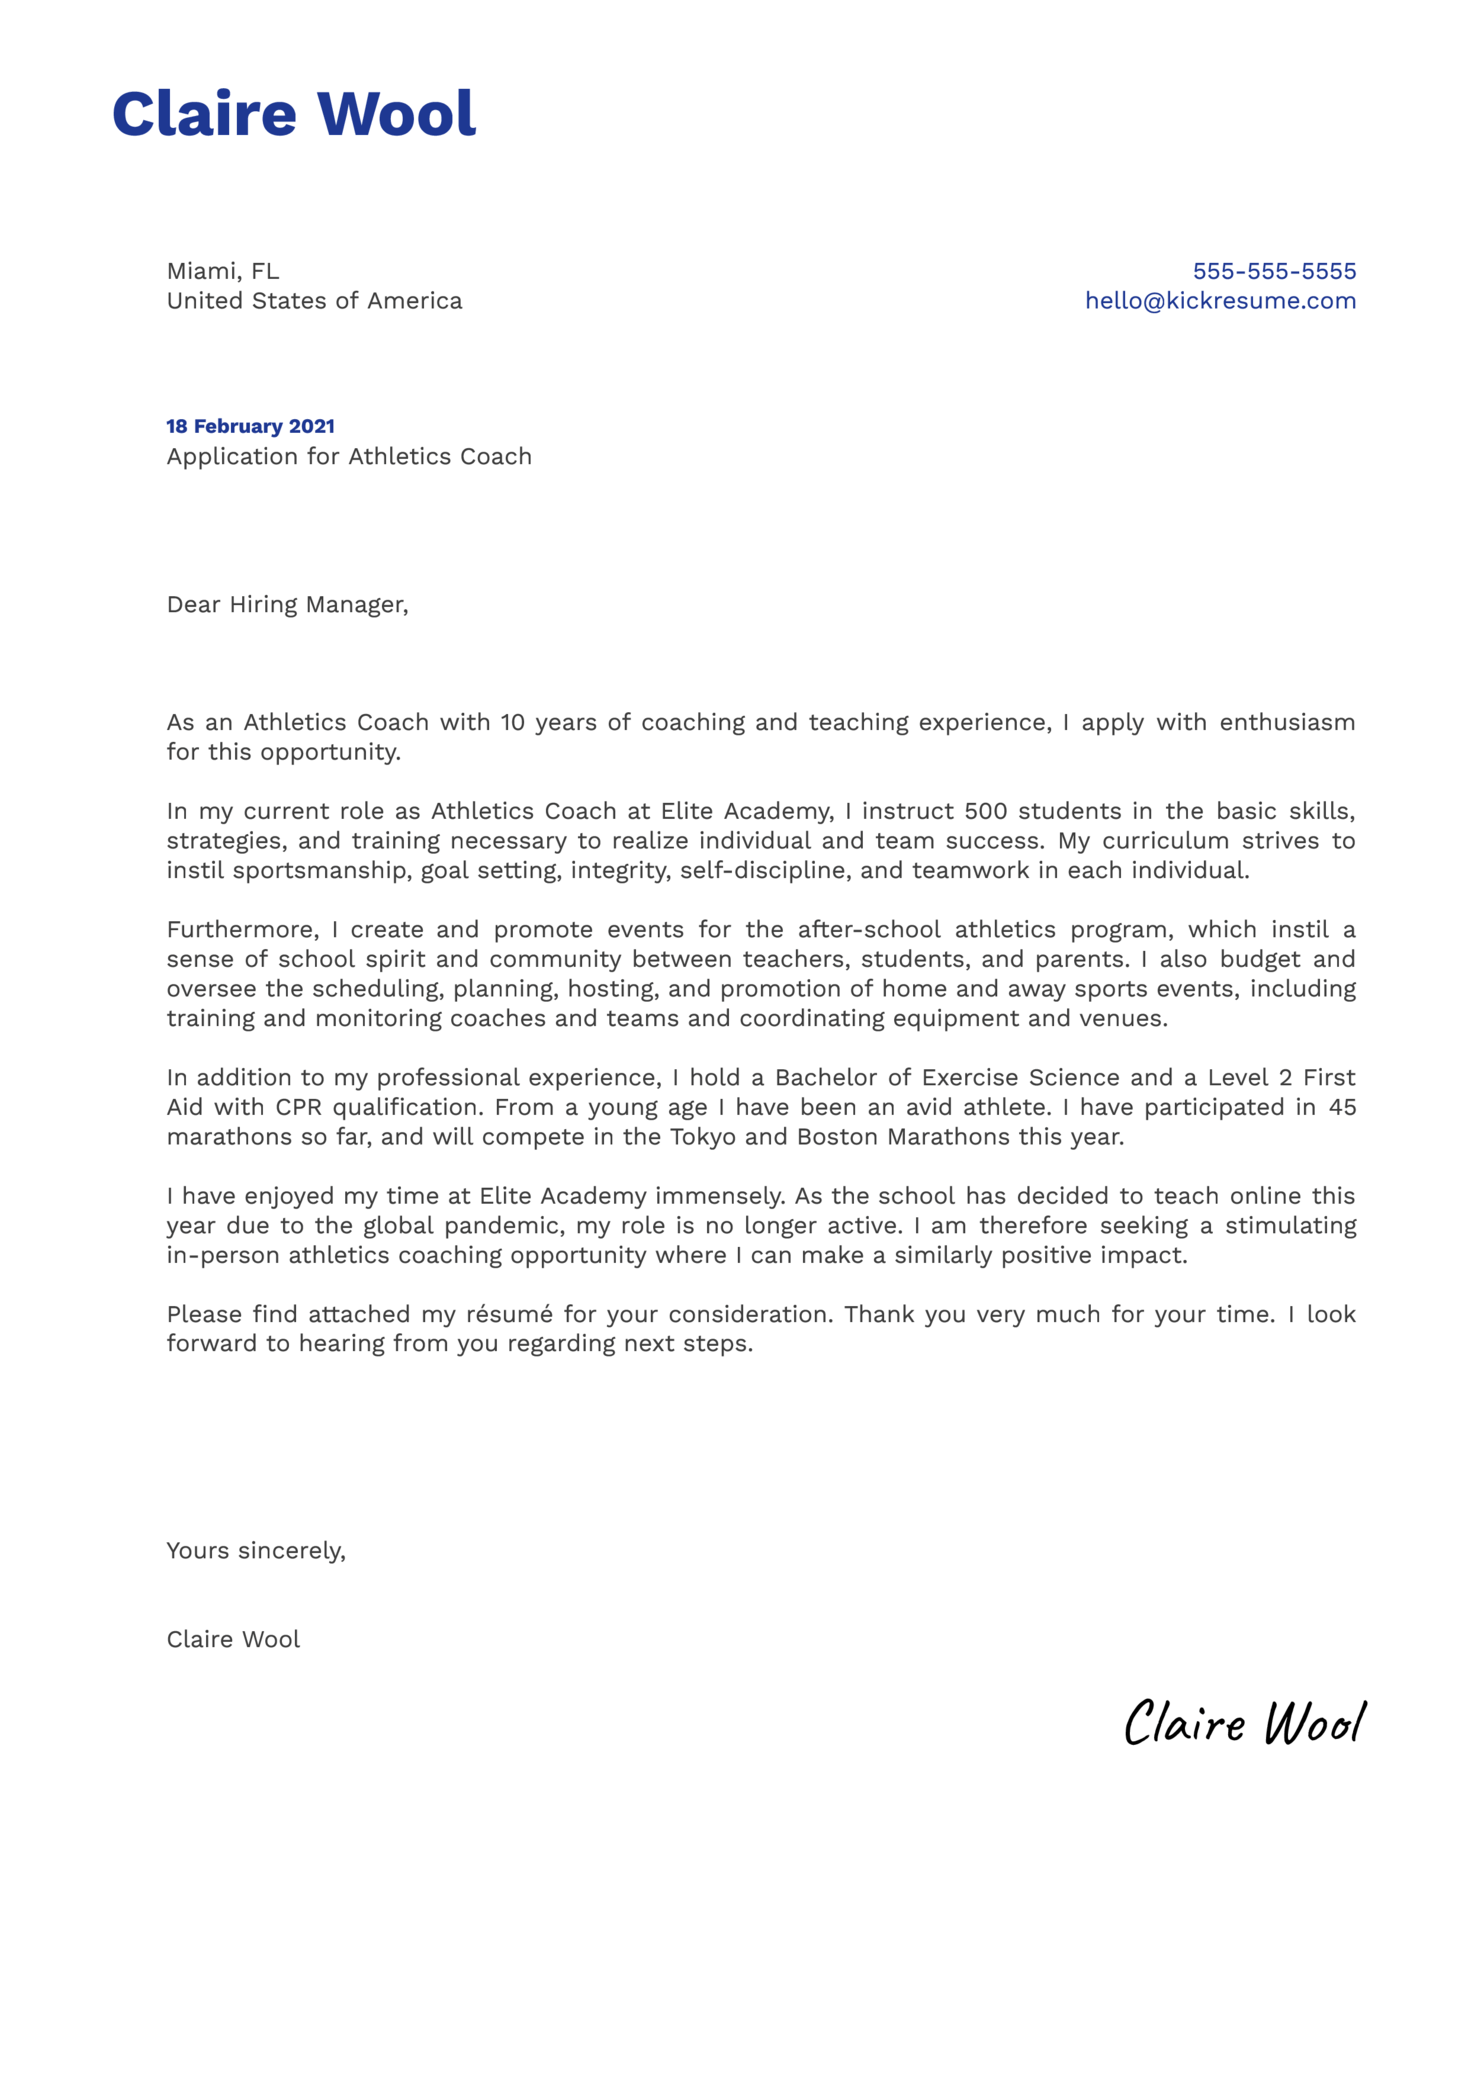 Athletics Coach Cover Letter Template